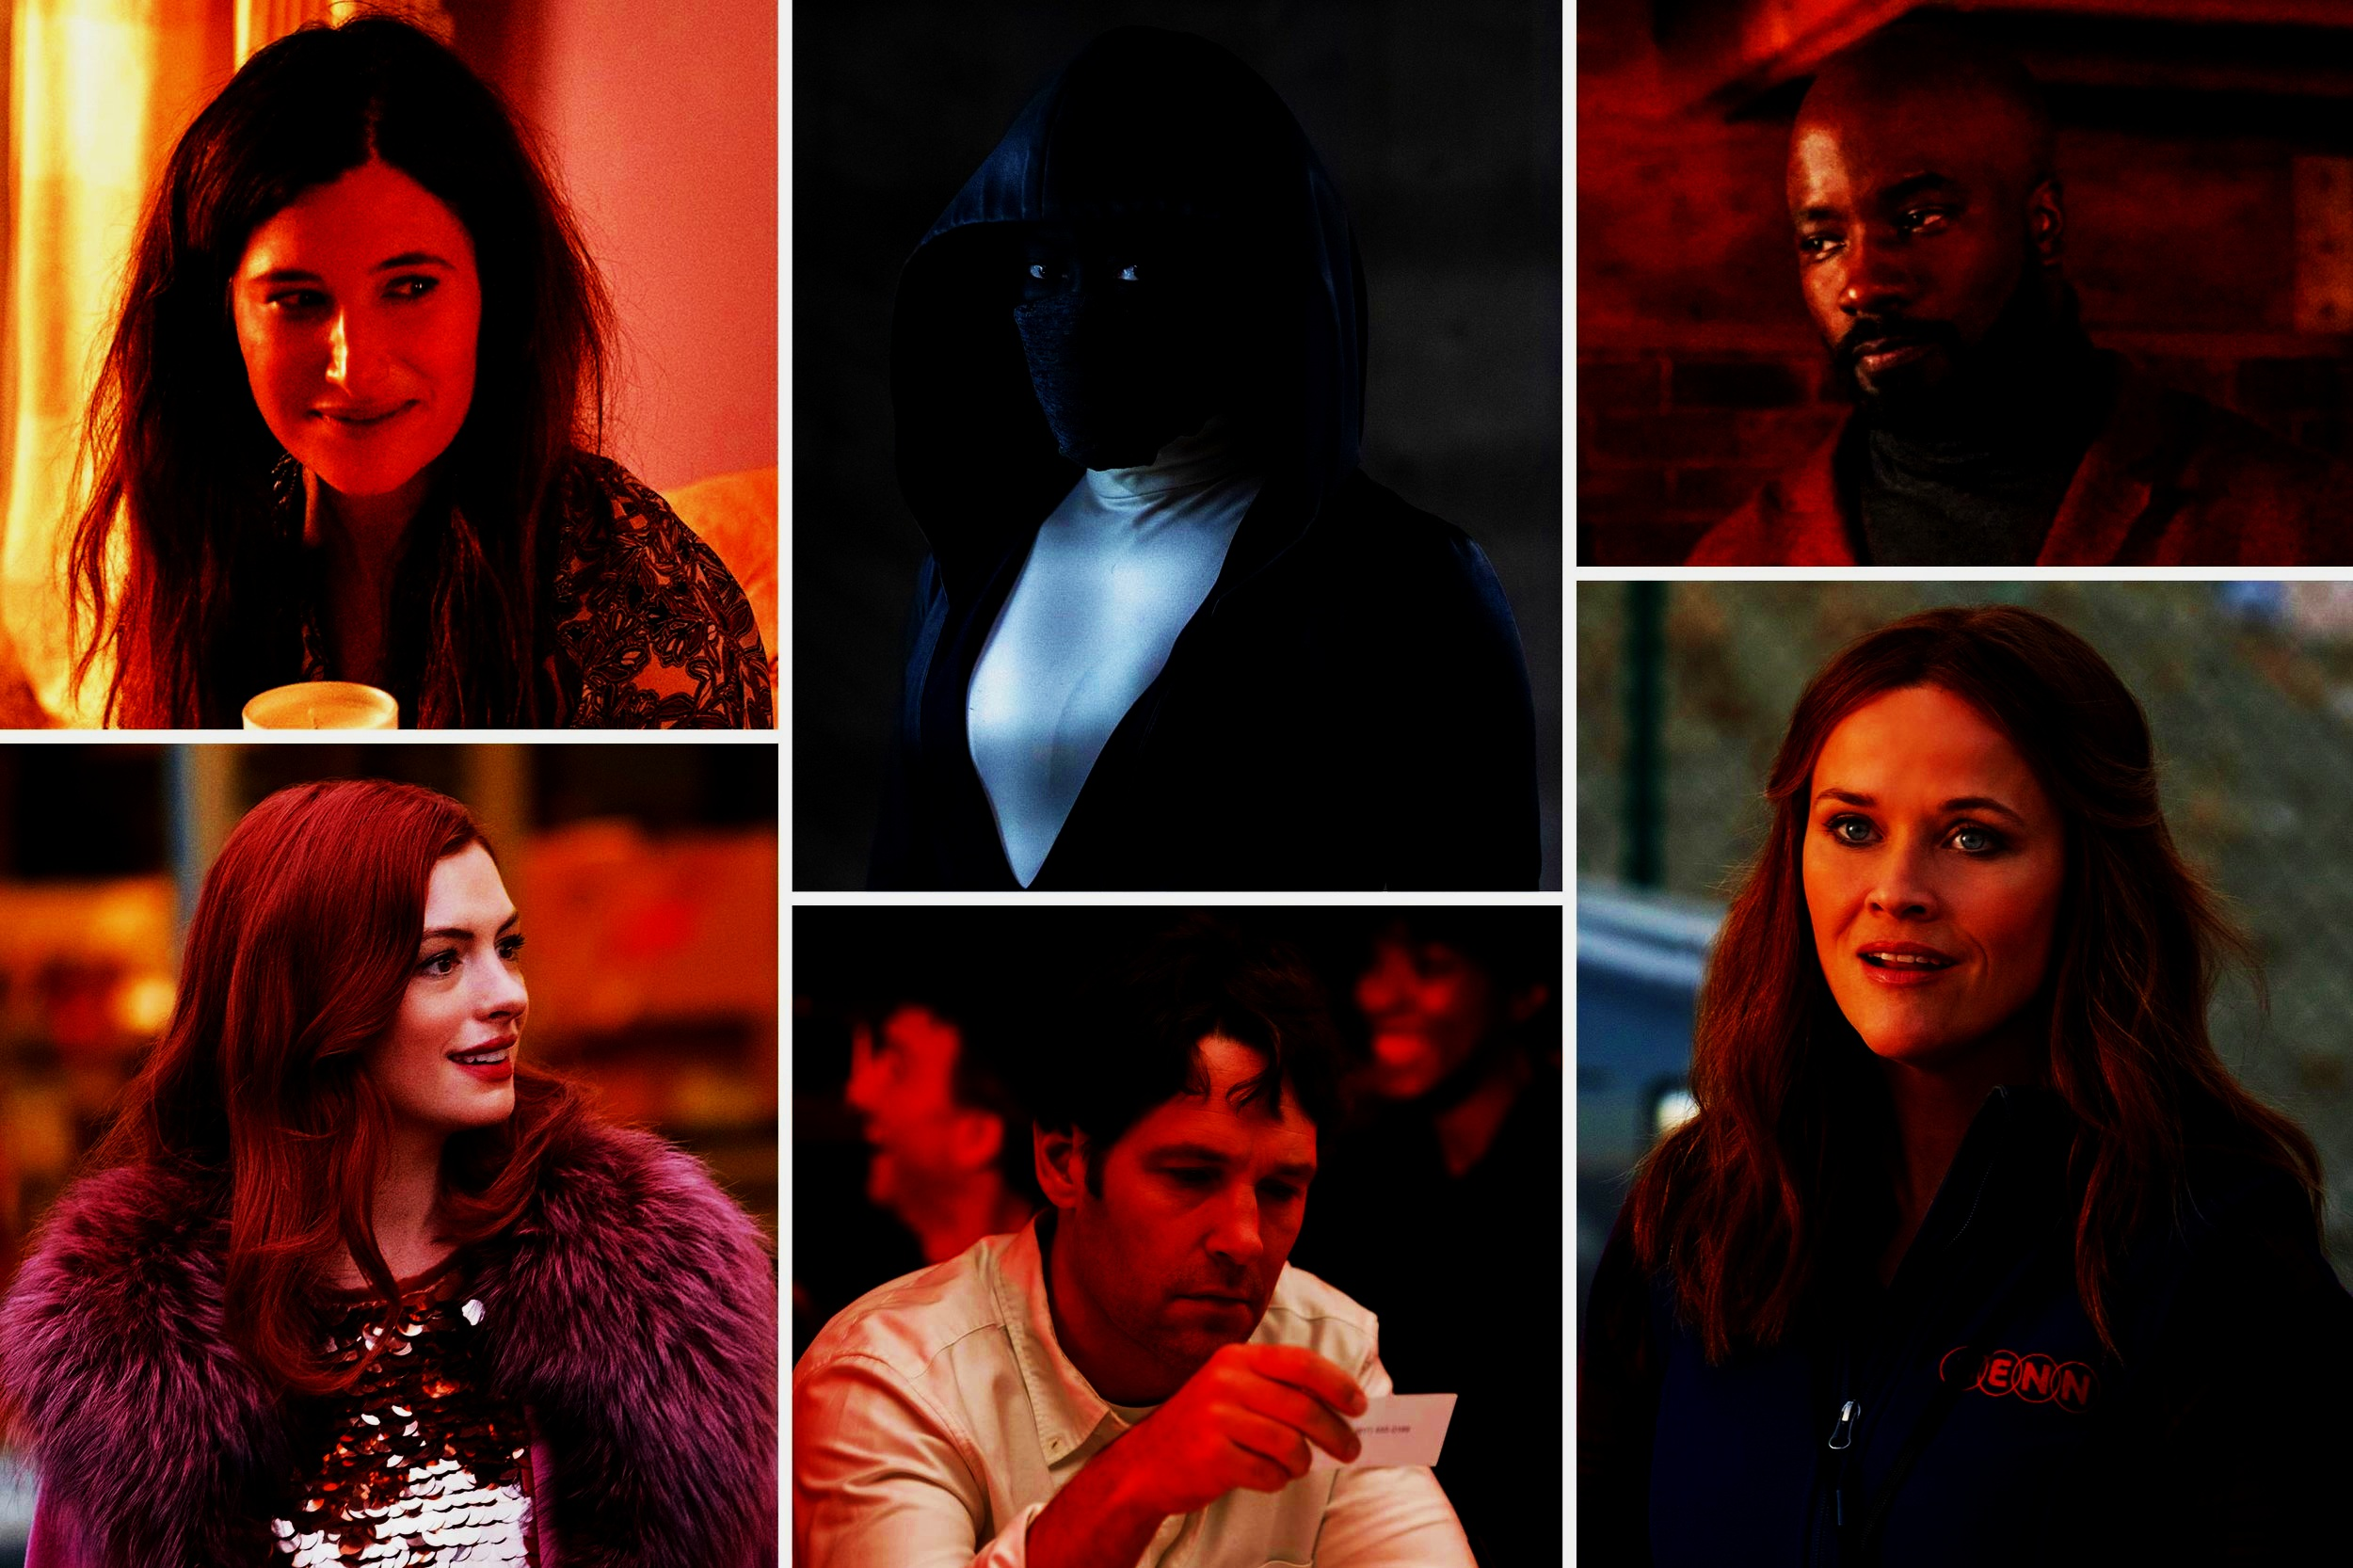 The 8 must-watch new TV shows this fall - From Entertainment Weekly